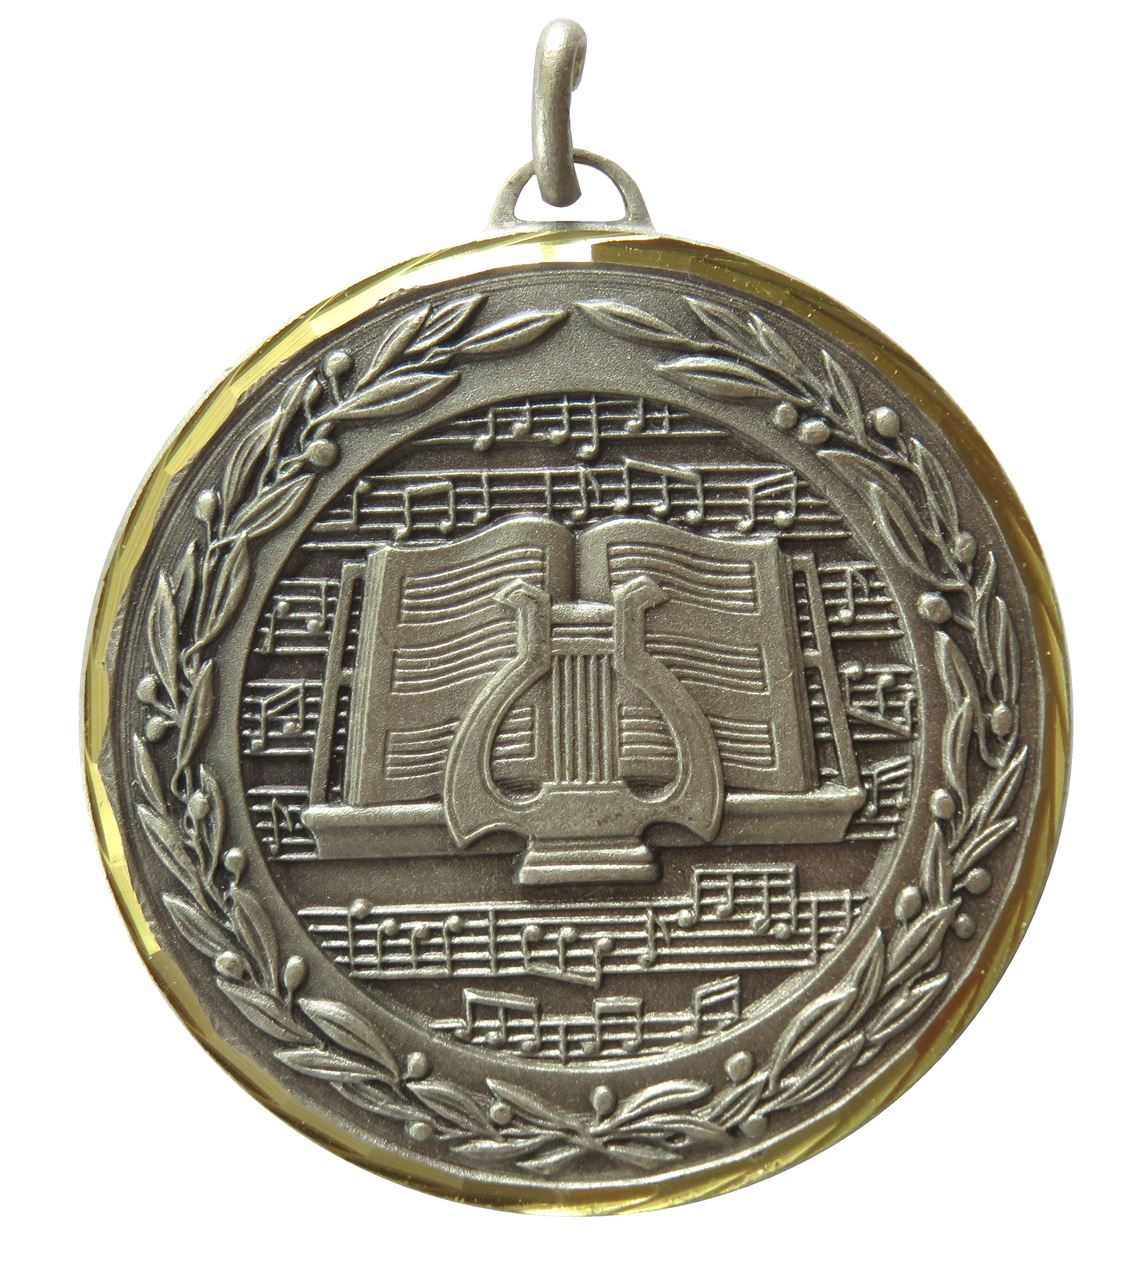 Silver Premium Classic Music Medal (size: 50mm) - 9602F